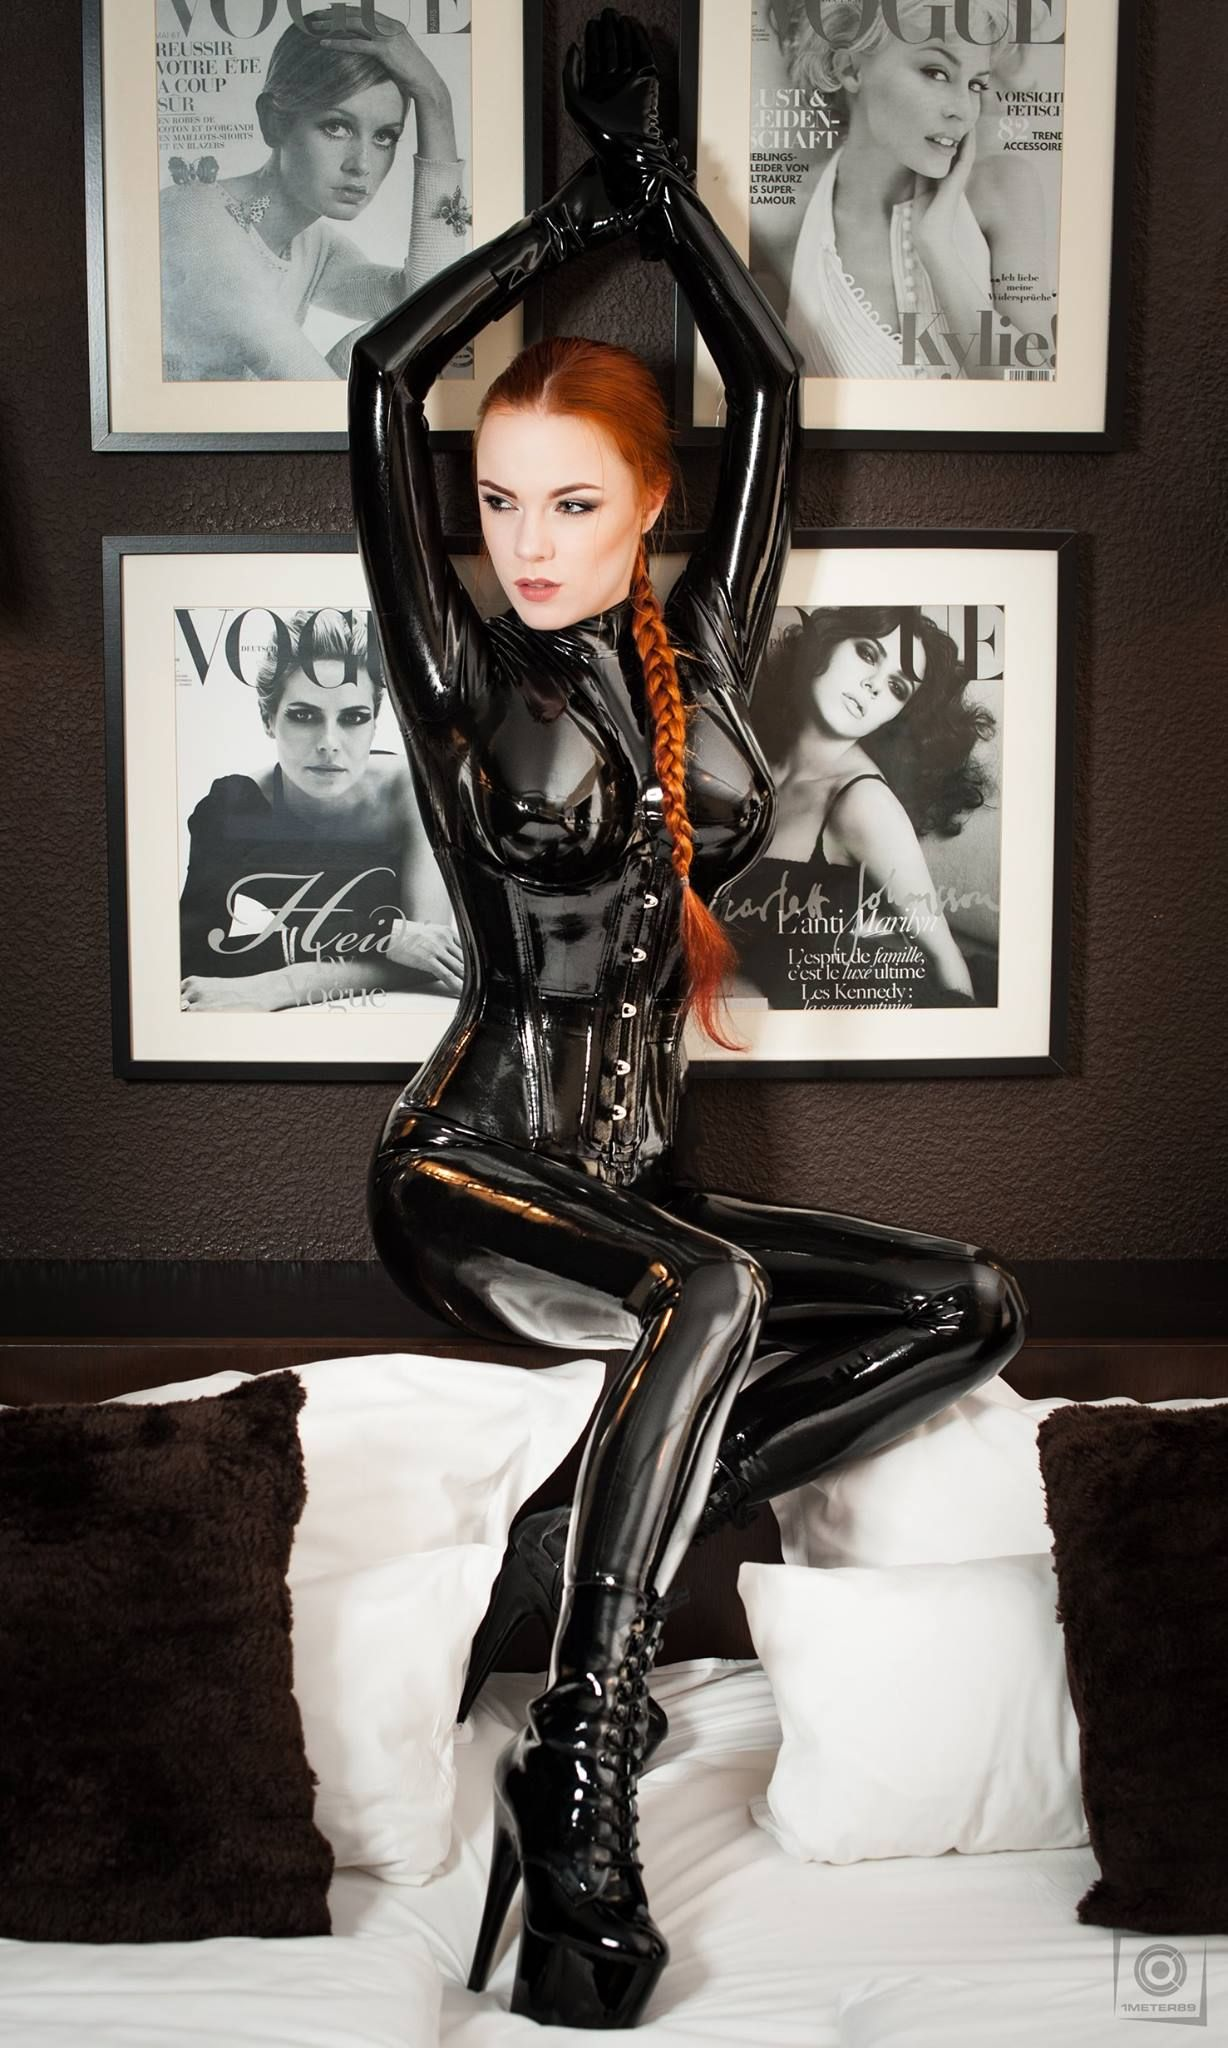 Foto Retouch 1meter89 Photography Catsuit And Corset Fantastic Rubber Make Up Hair Sarah